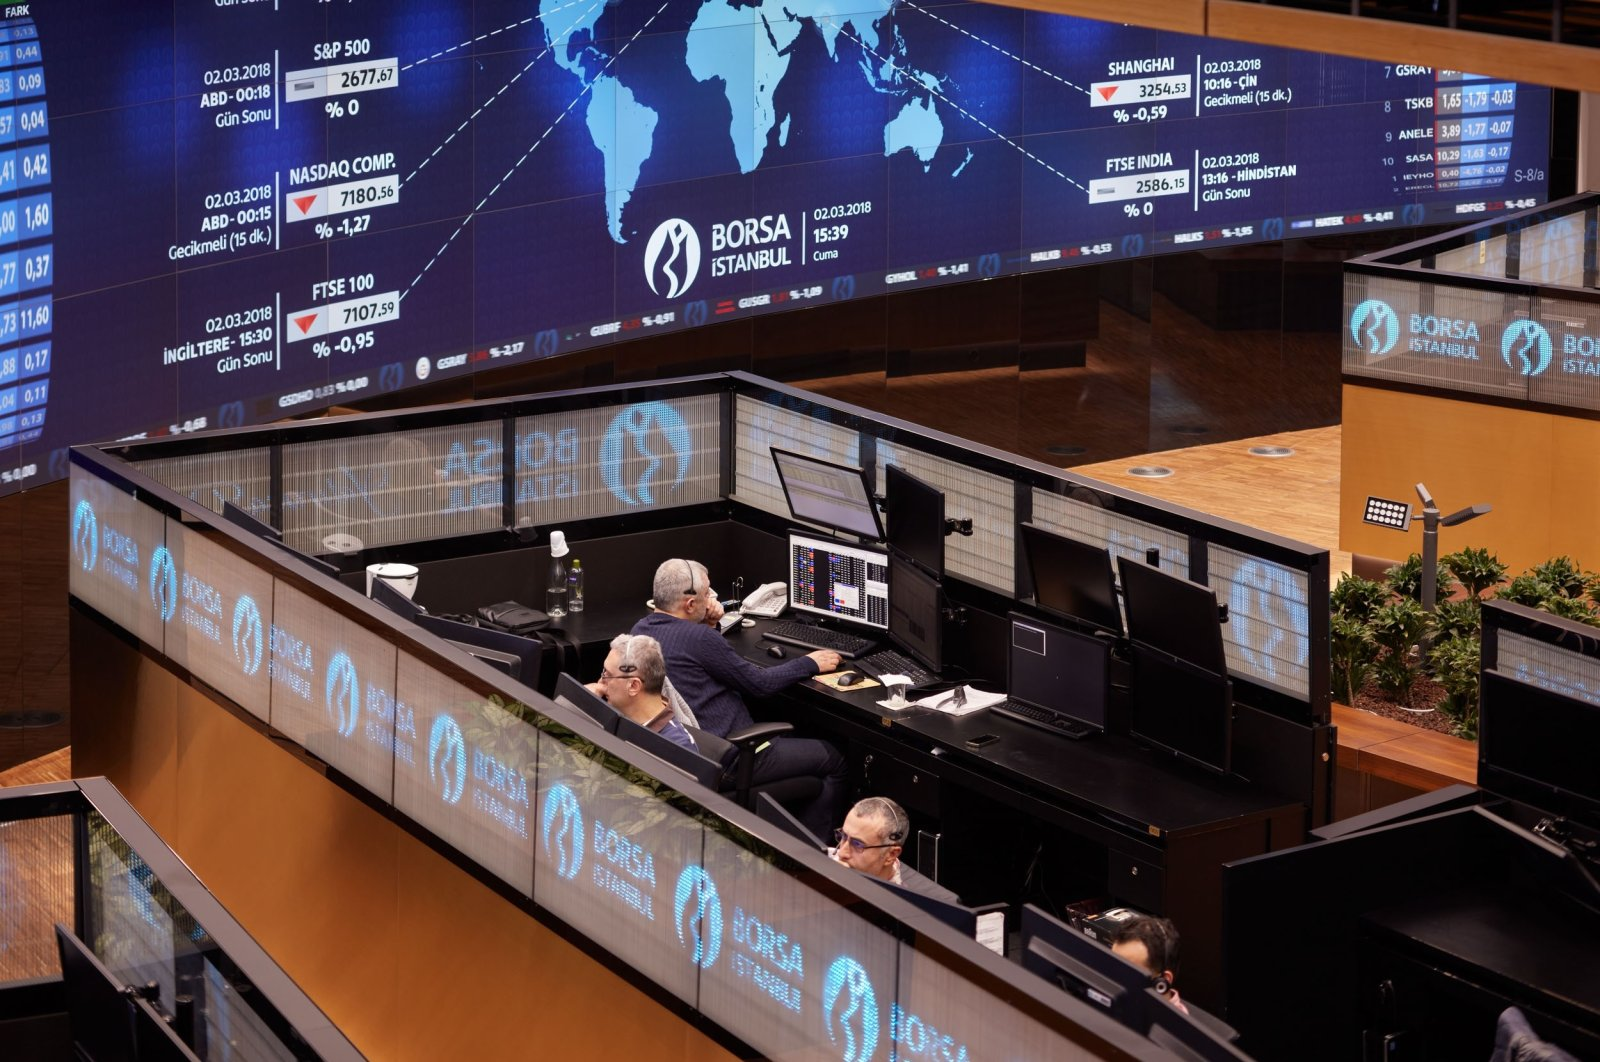 Traders work at their desks at Istanbul Stock Exchange, Borsa Istanbul, Turkey, Oct. 26, 2020. (IHA Photo)